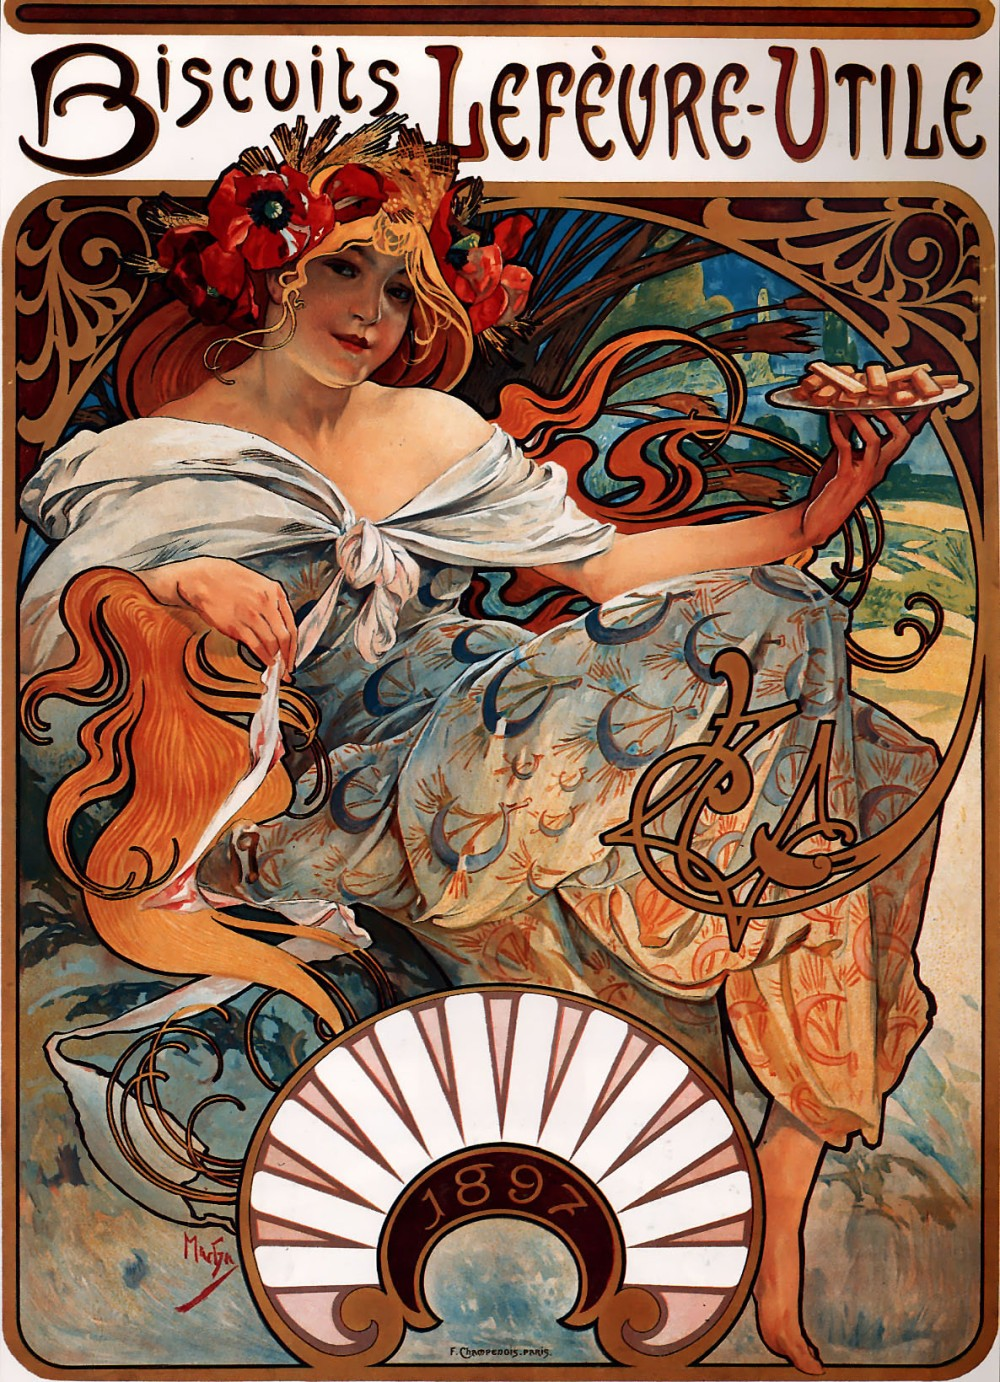 Alfons_Mucha_-_1896_-_Biscuits_Lefèvre-Utile